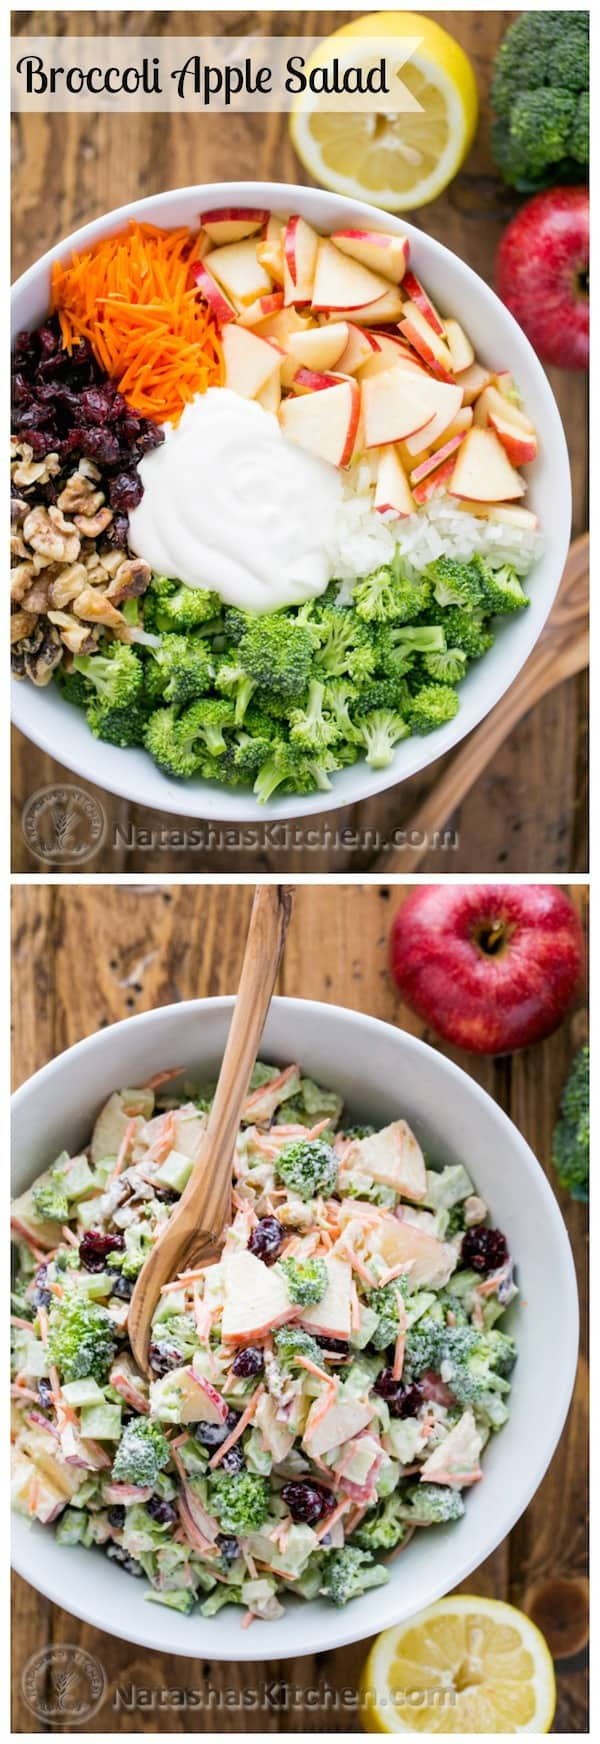 Fresh Broccoli Apple Salad with walnuts and a creamy lemon dressing